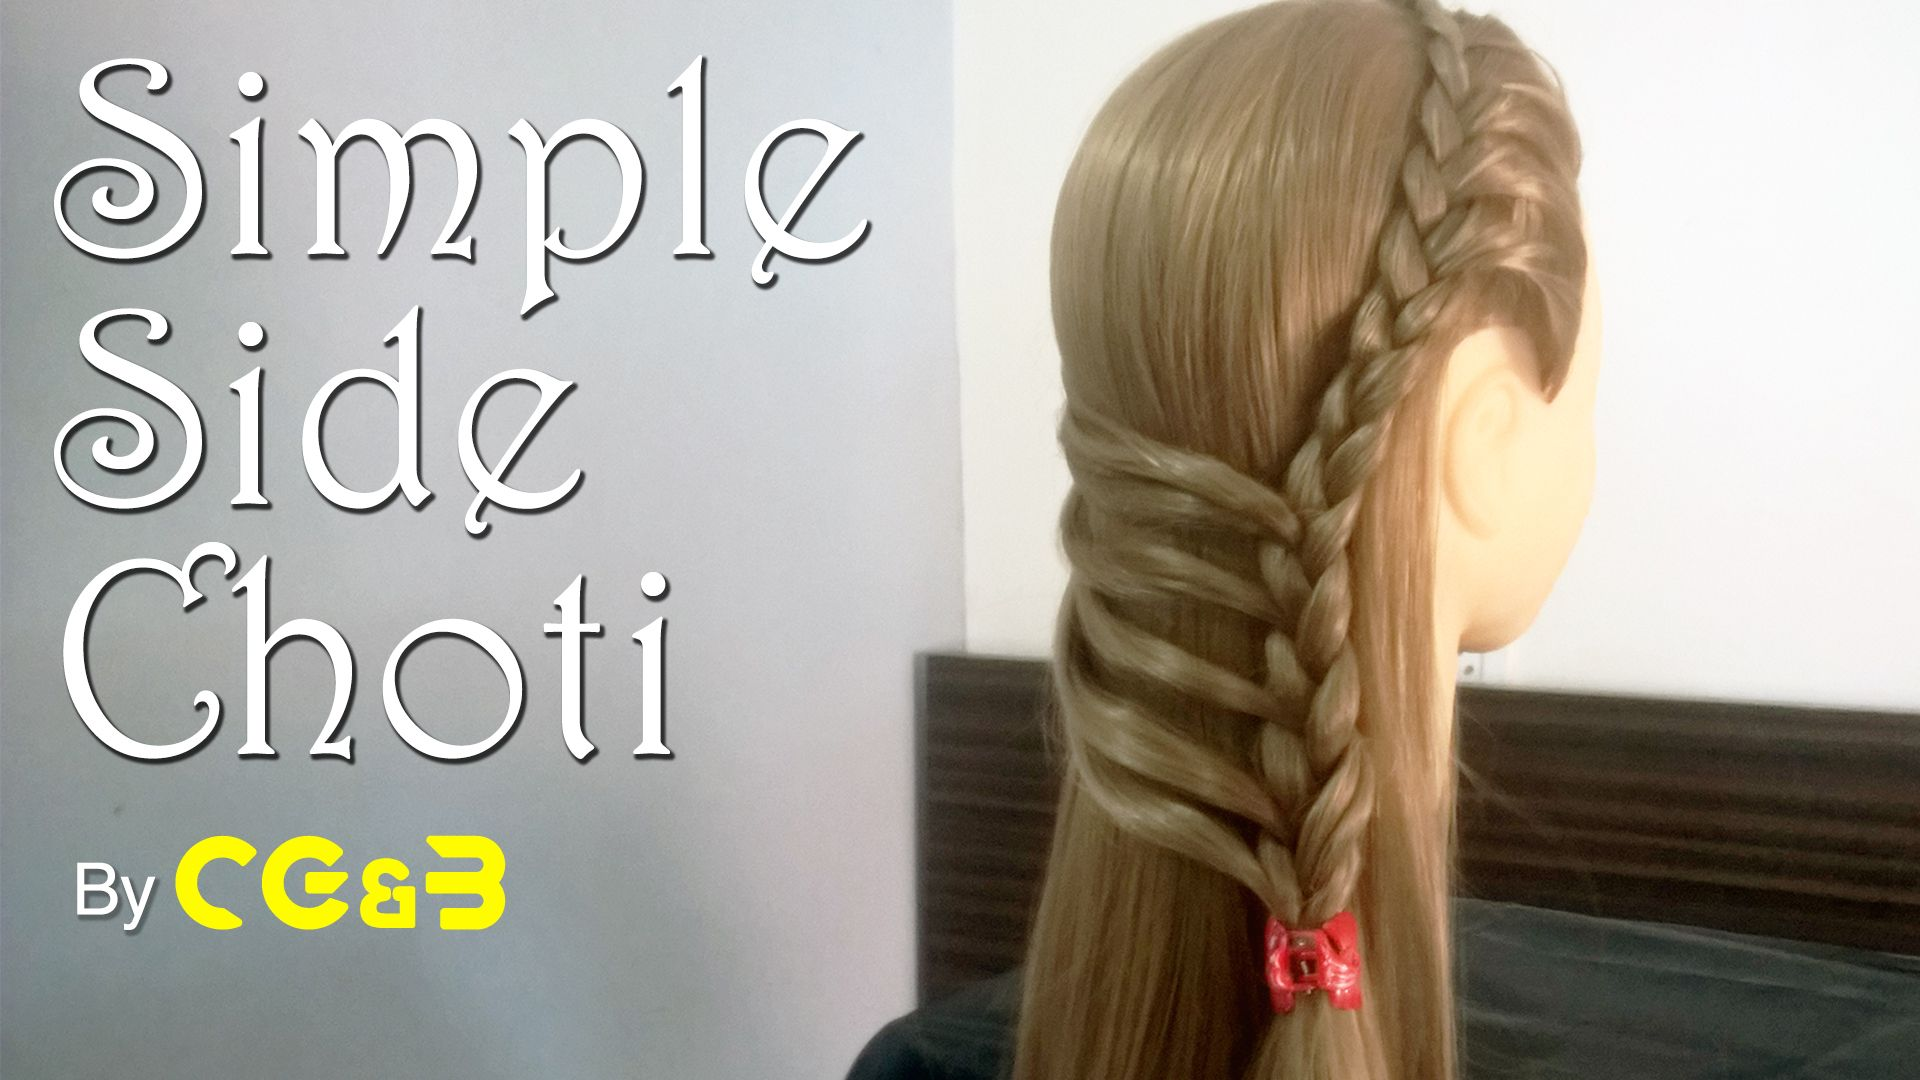 Upper Side Choti Simple Hairstyle For Any Party Cute Simple Hairstyles Easy Hairstyles Hair Styles